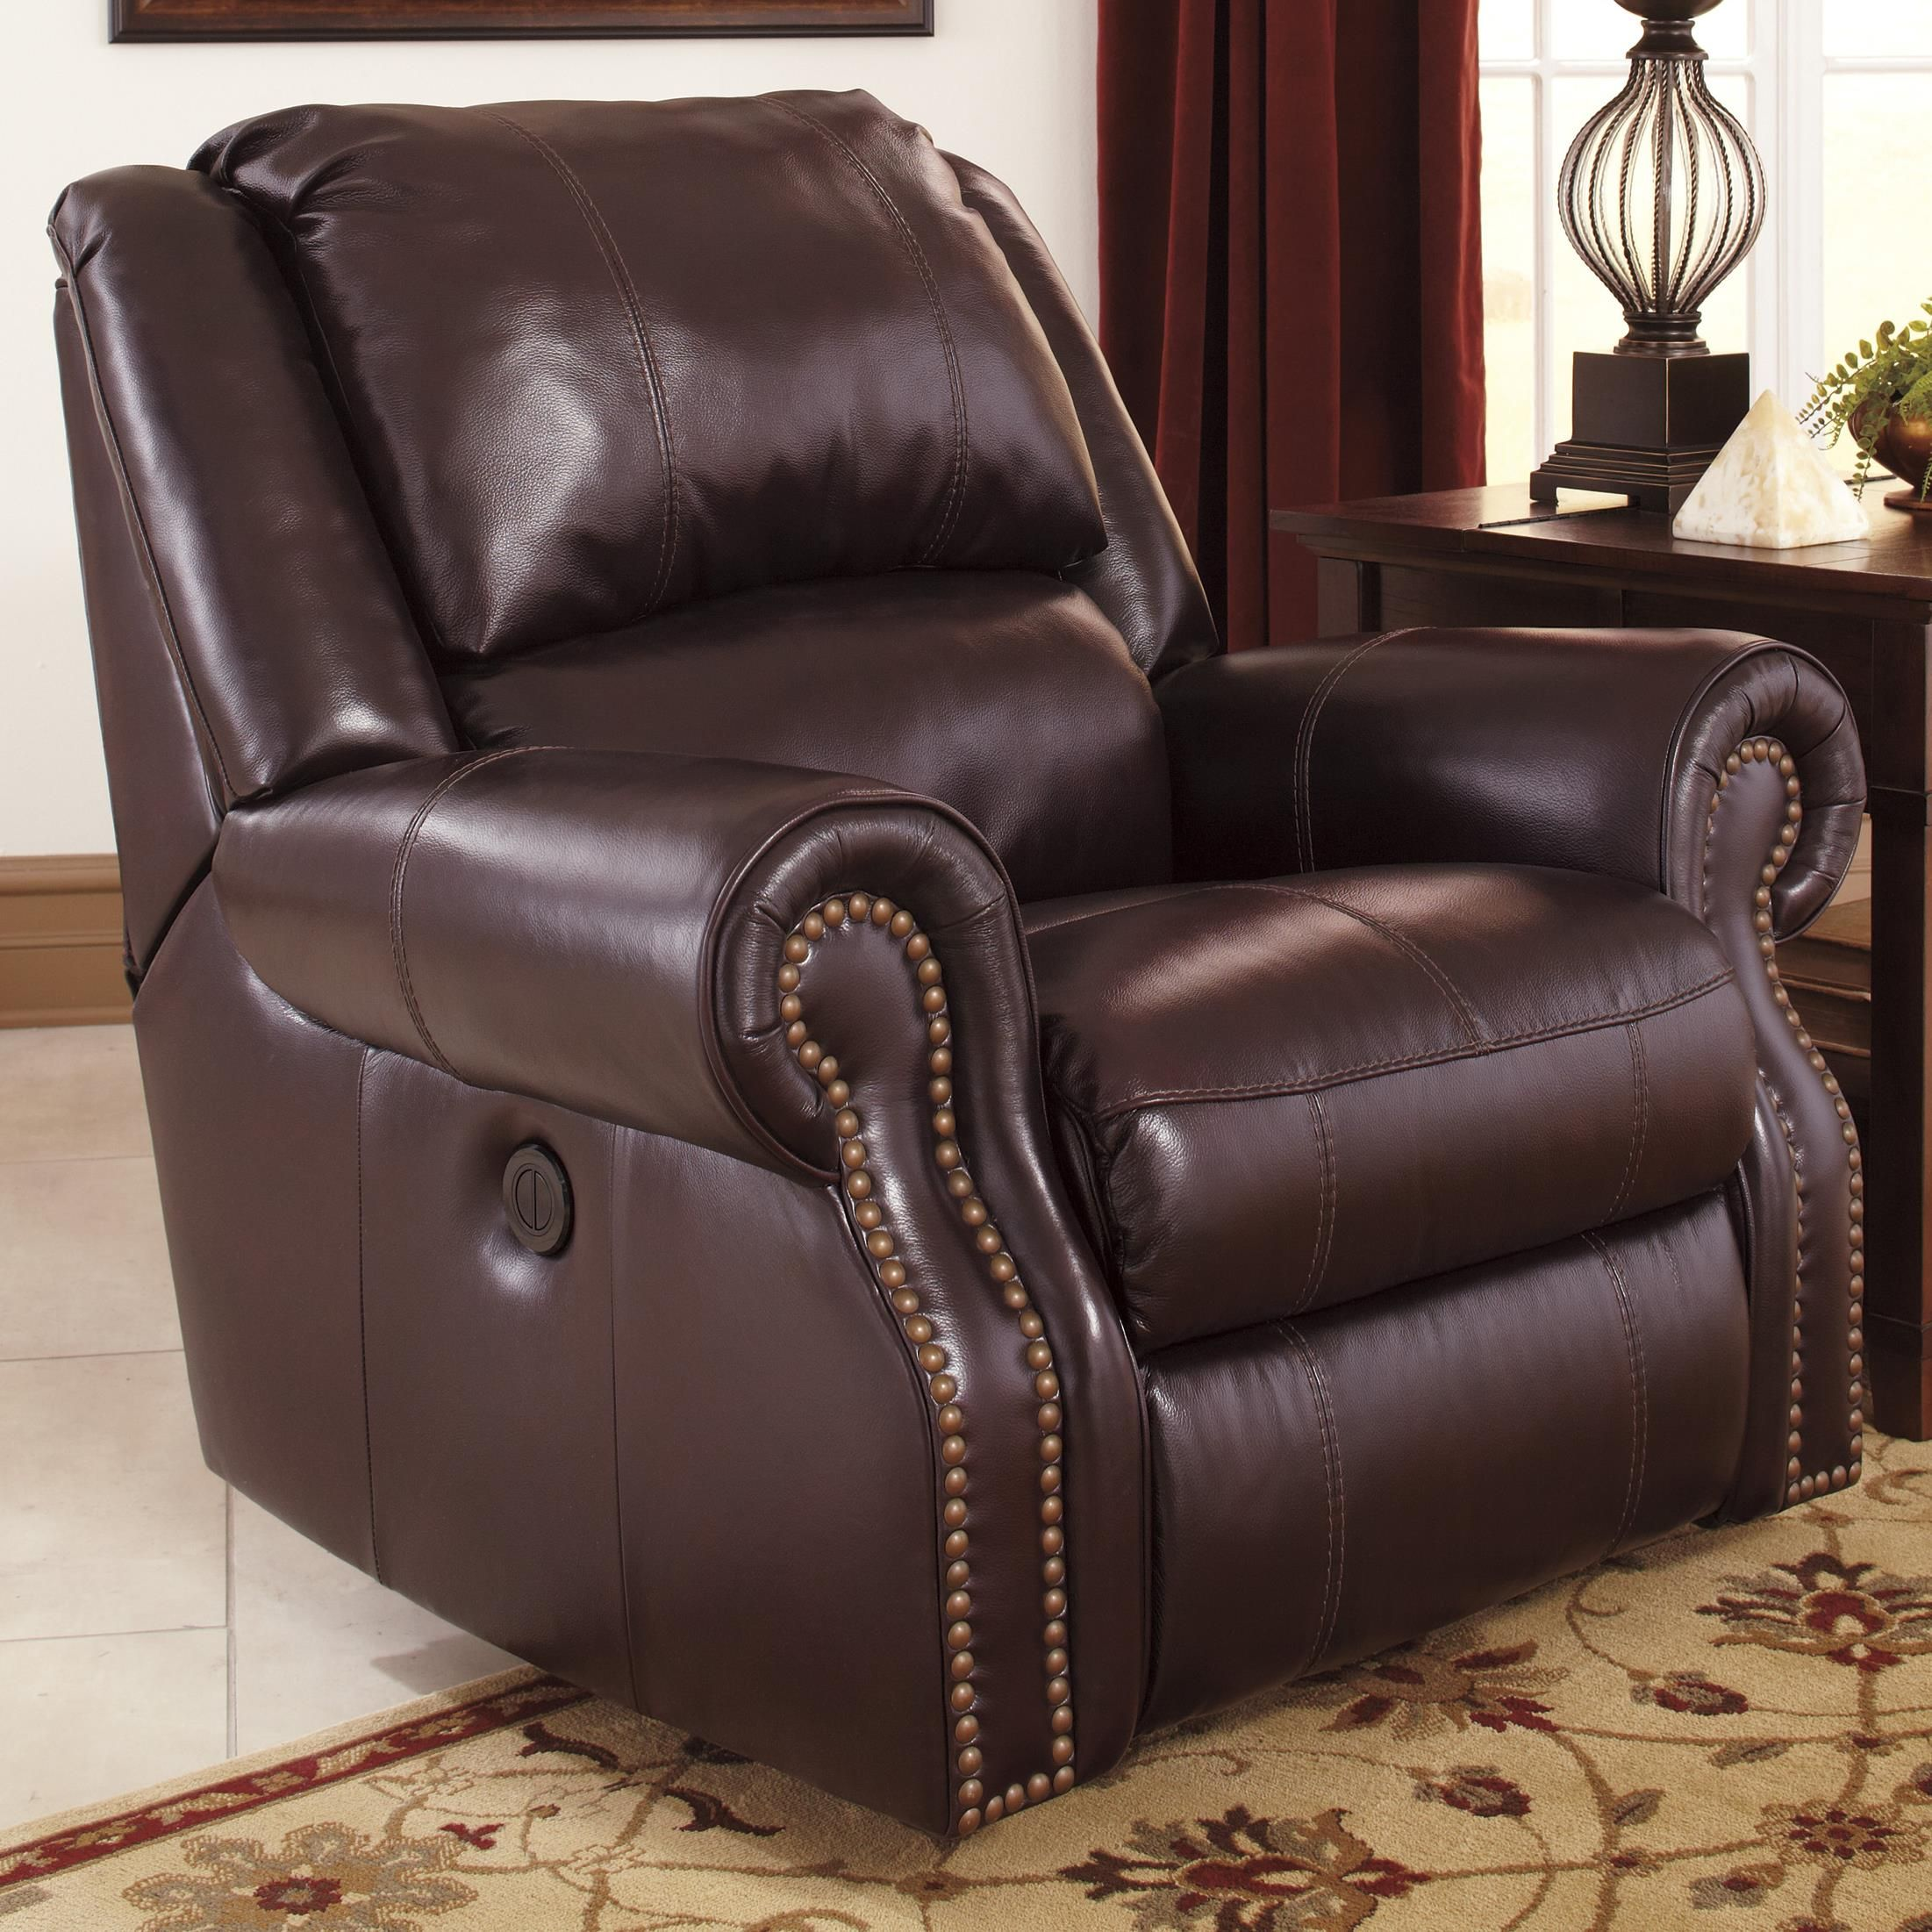 Walworth Rocker Recliner by Signature Design by Ashley